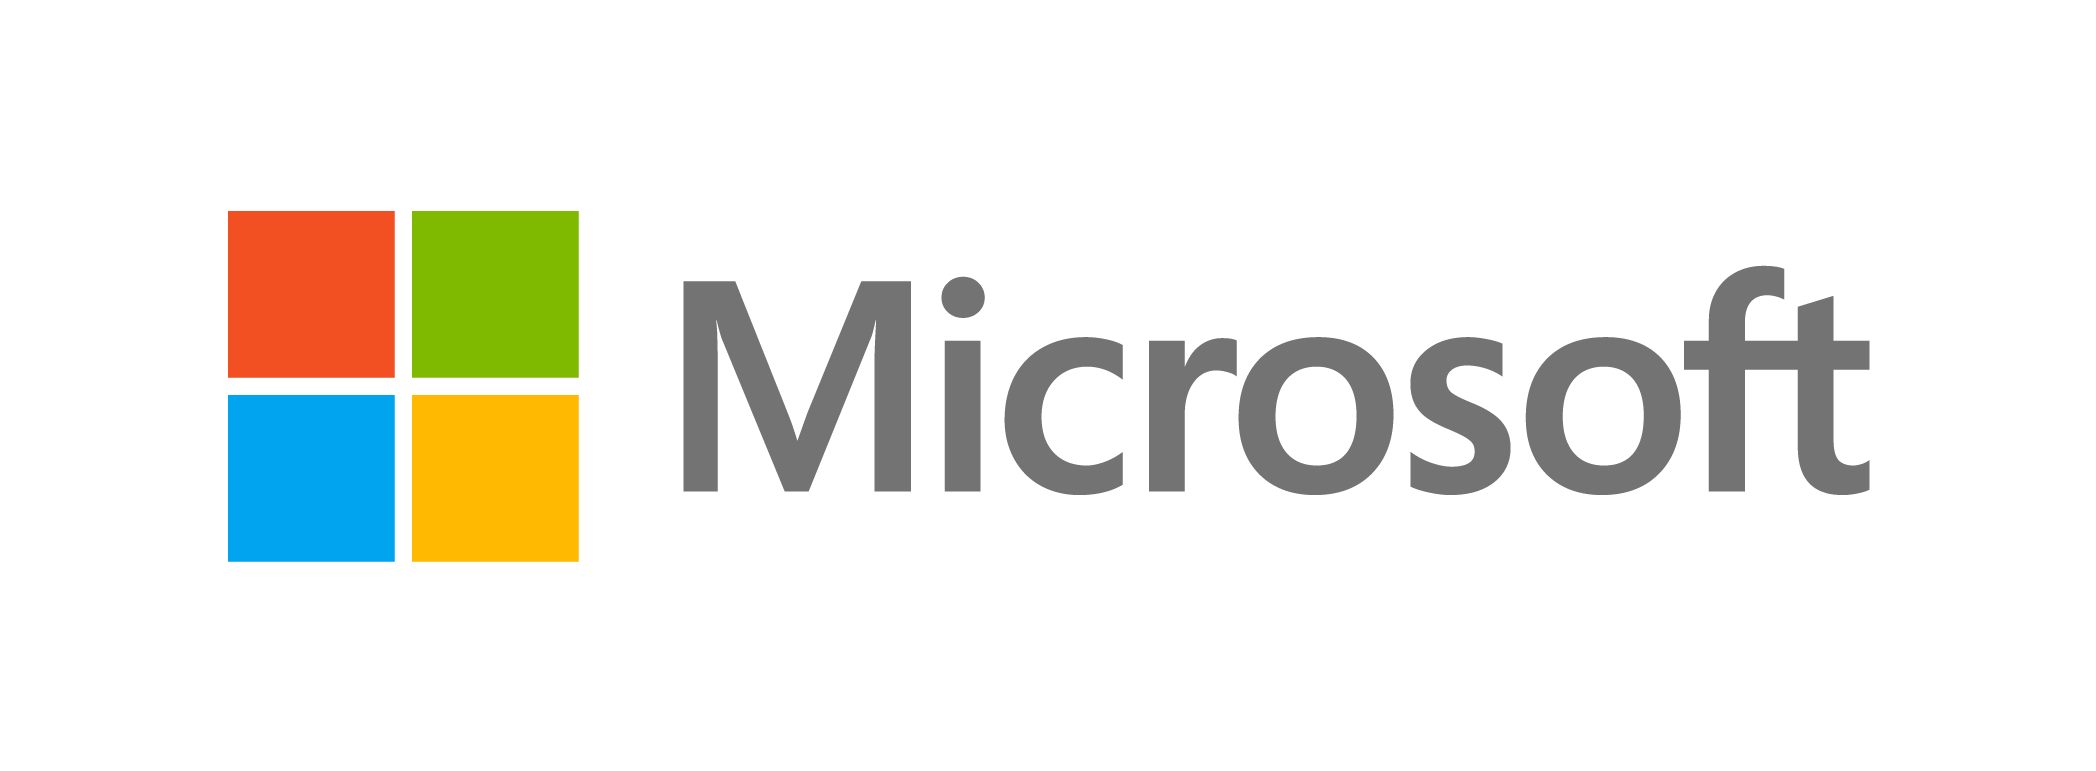 Microsoft-Logo-Transparent-Background